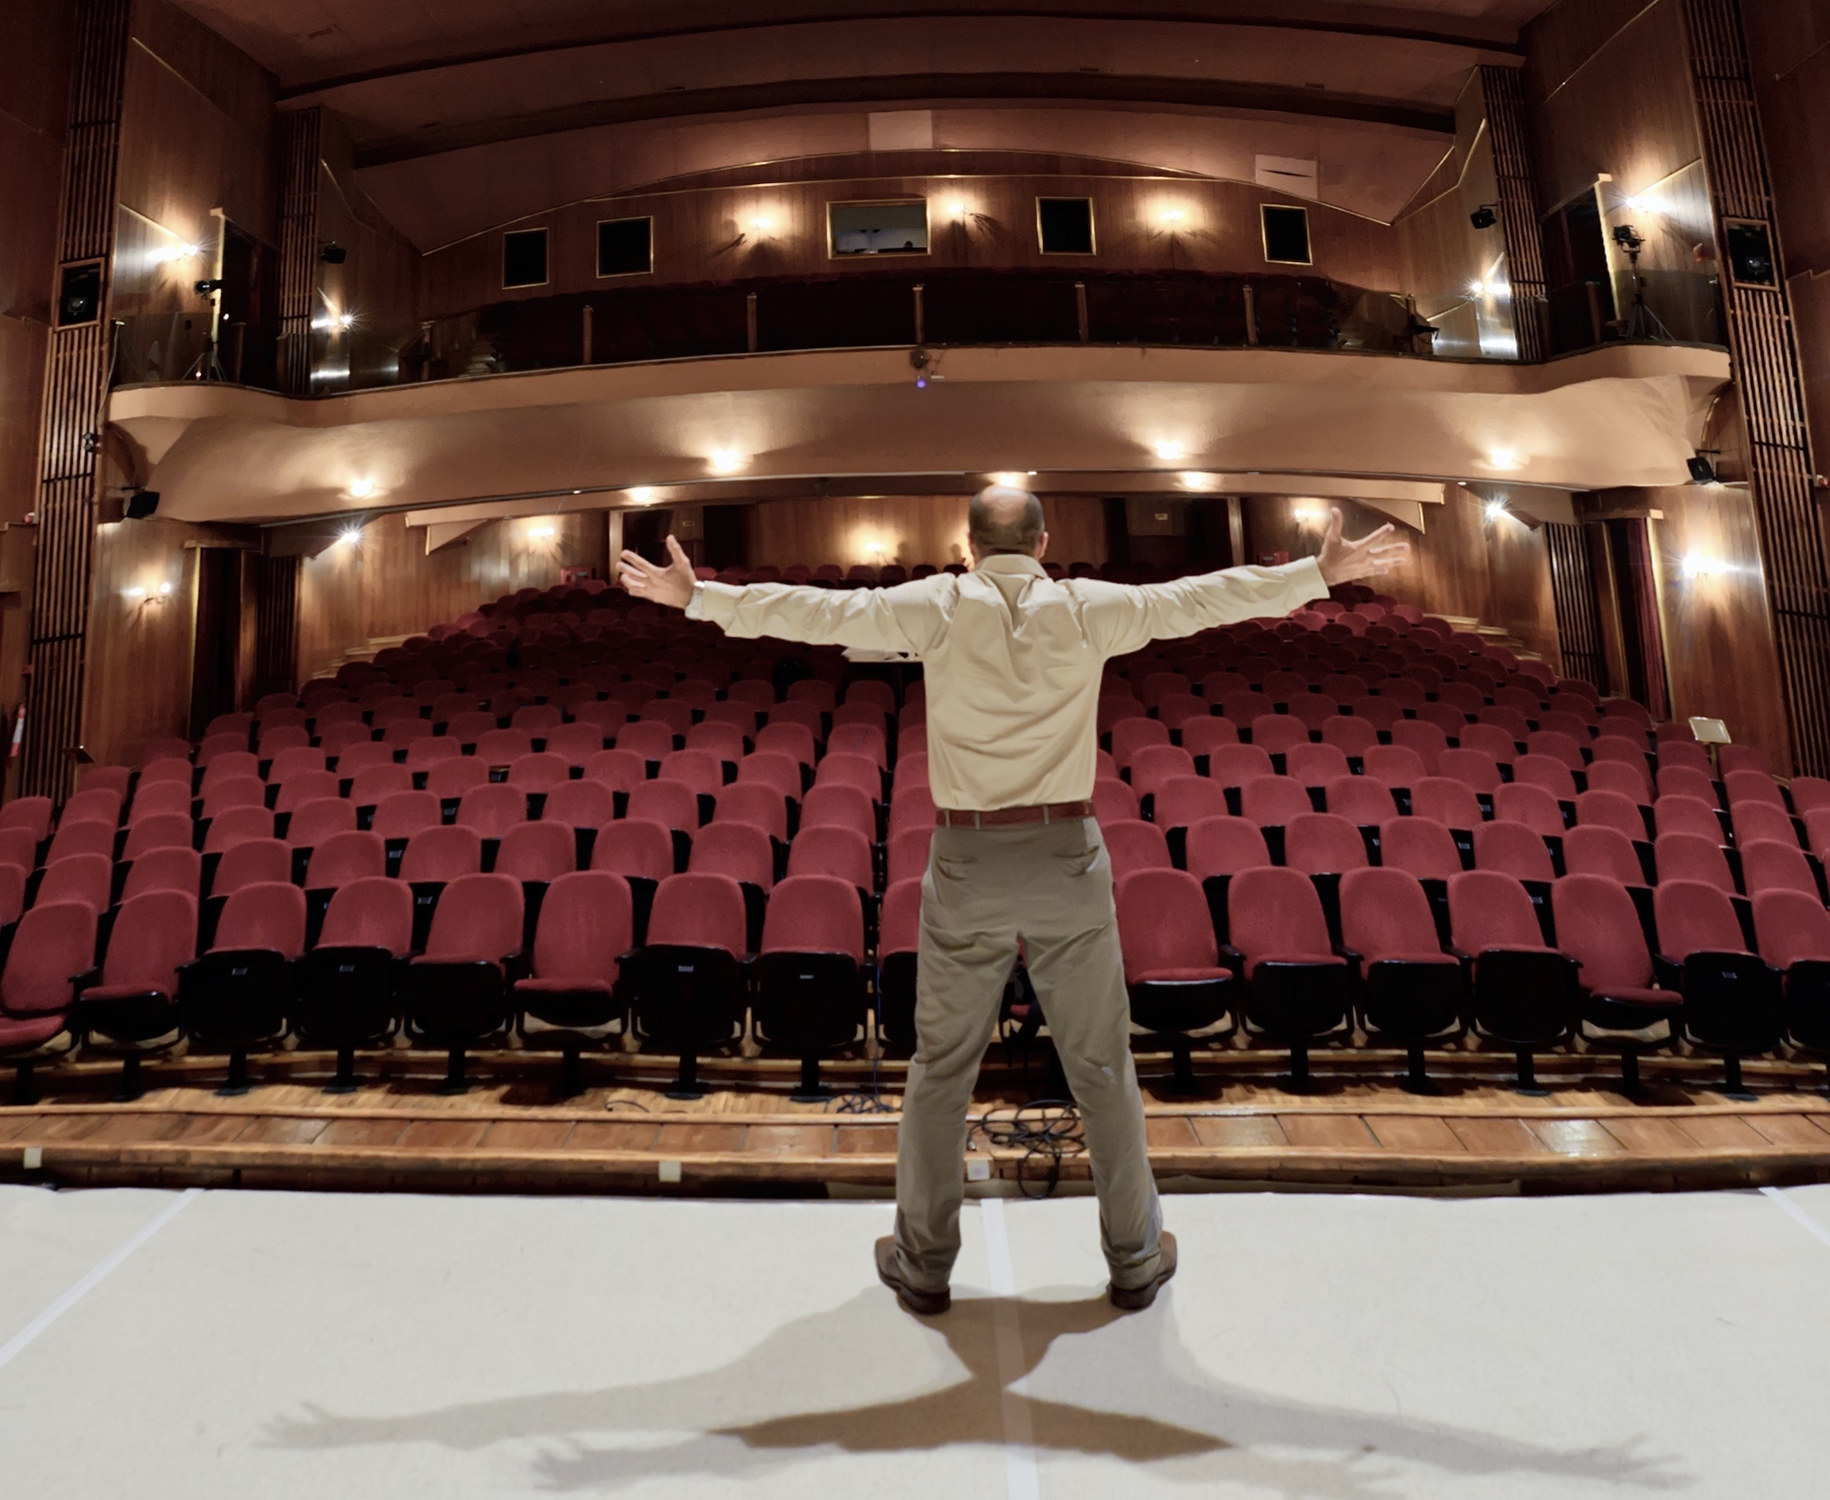 Man rehearsing on stage in front of an empty theater